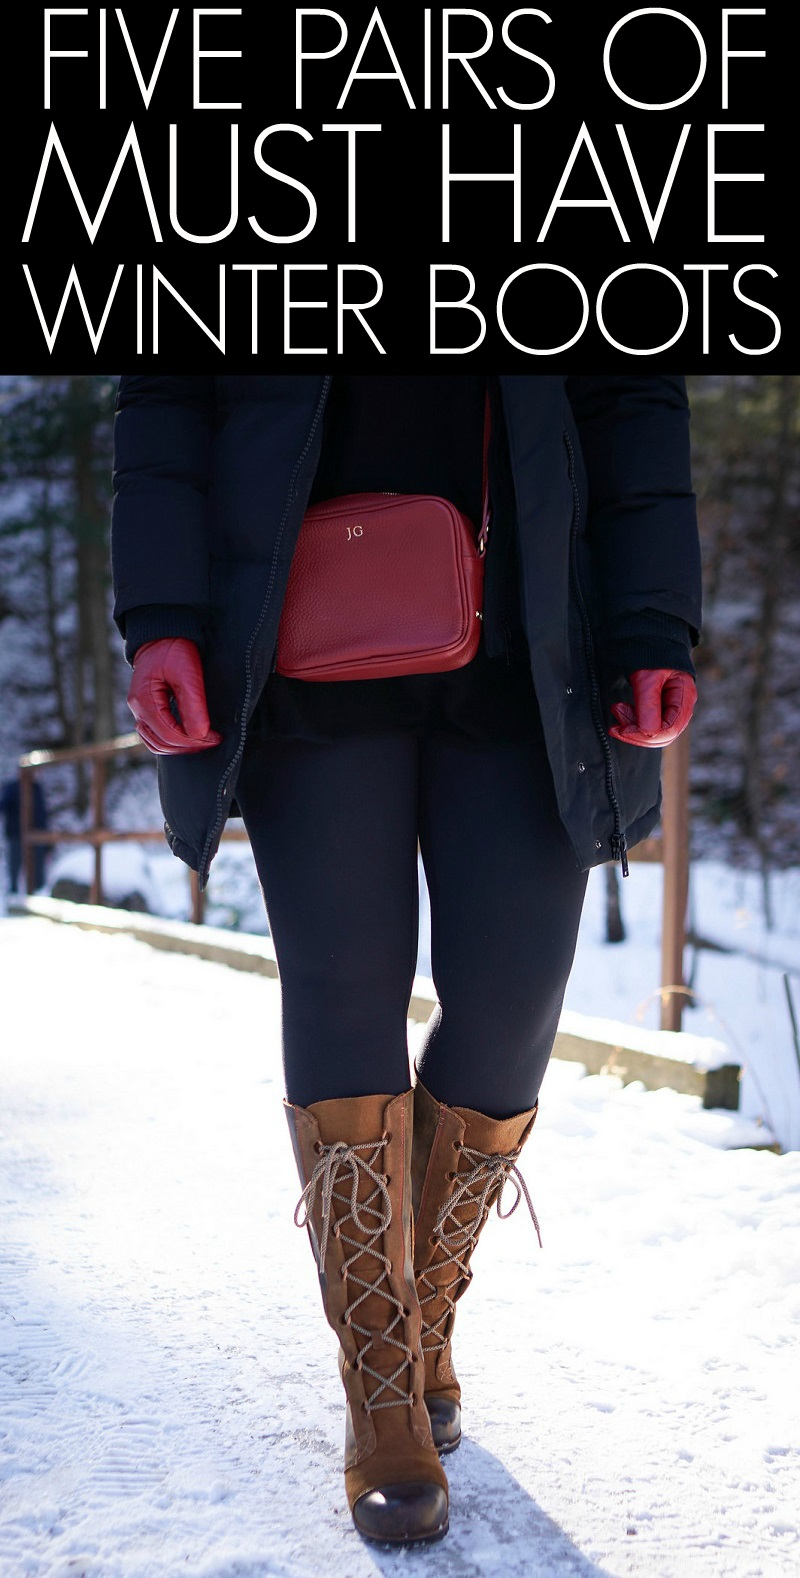 Five Pairs of Must Have Winter Boots | Sorel Cate the Great Wedges